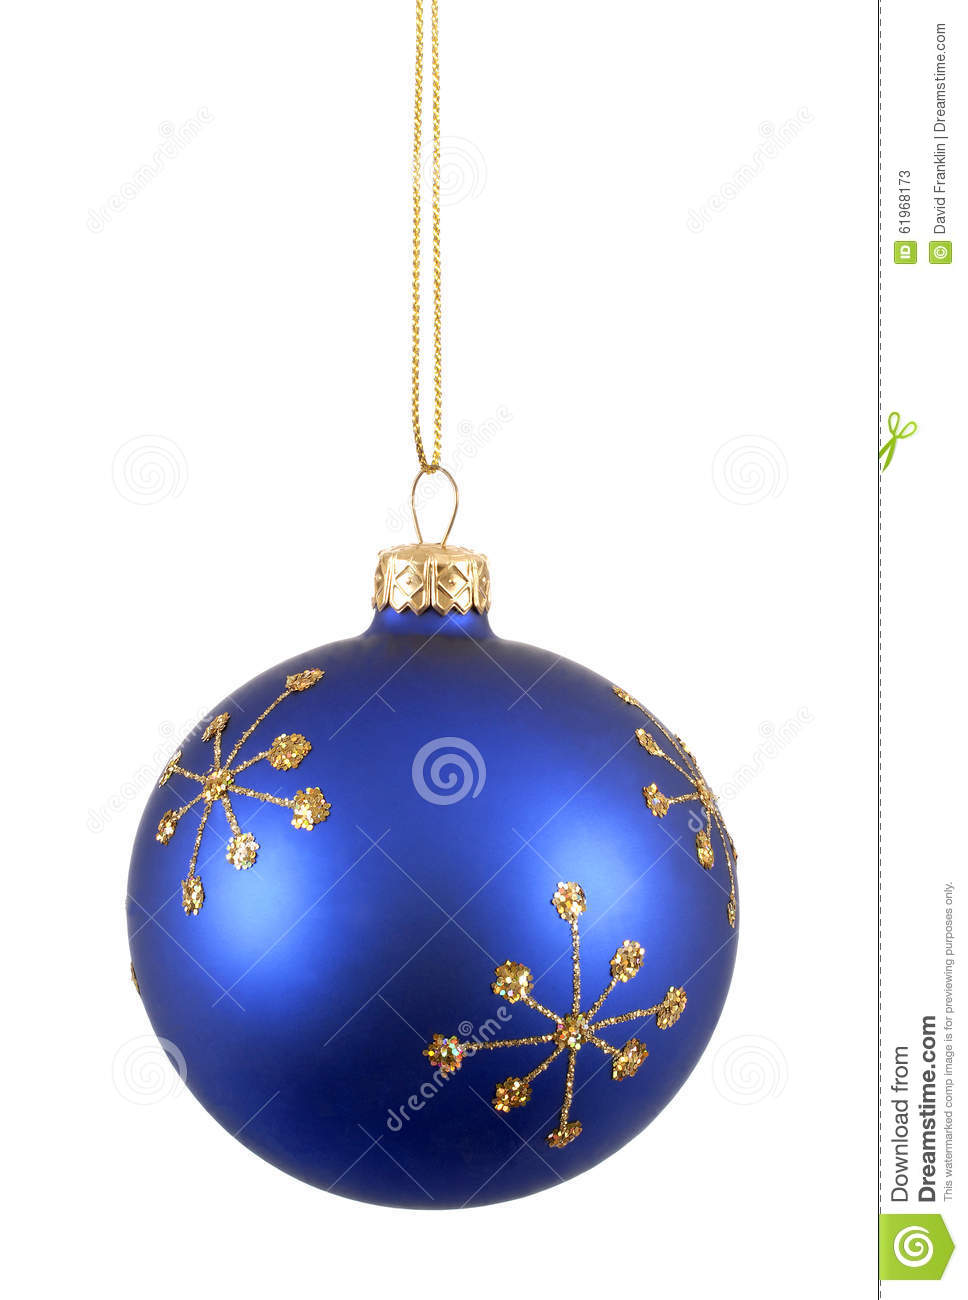 blue ball buddhist singles The dharma wheel is an important symbol in indian iconography an establishment of law as espoused by buddhist teachings virgo singles love horoscope.